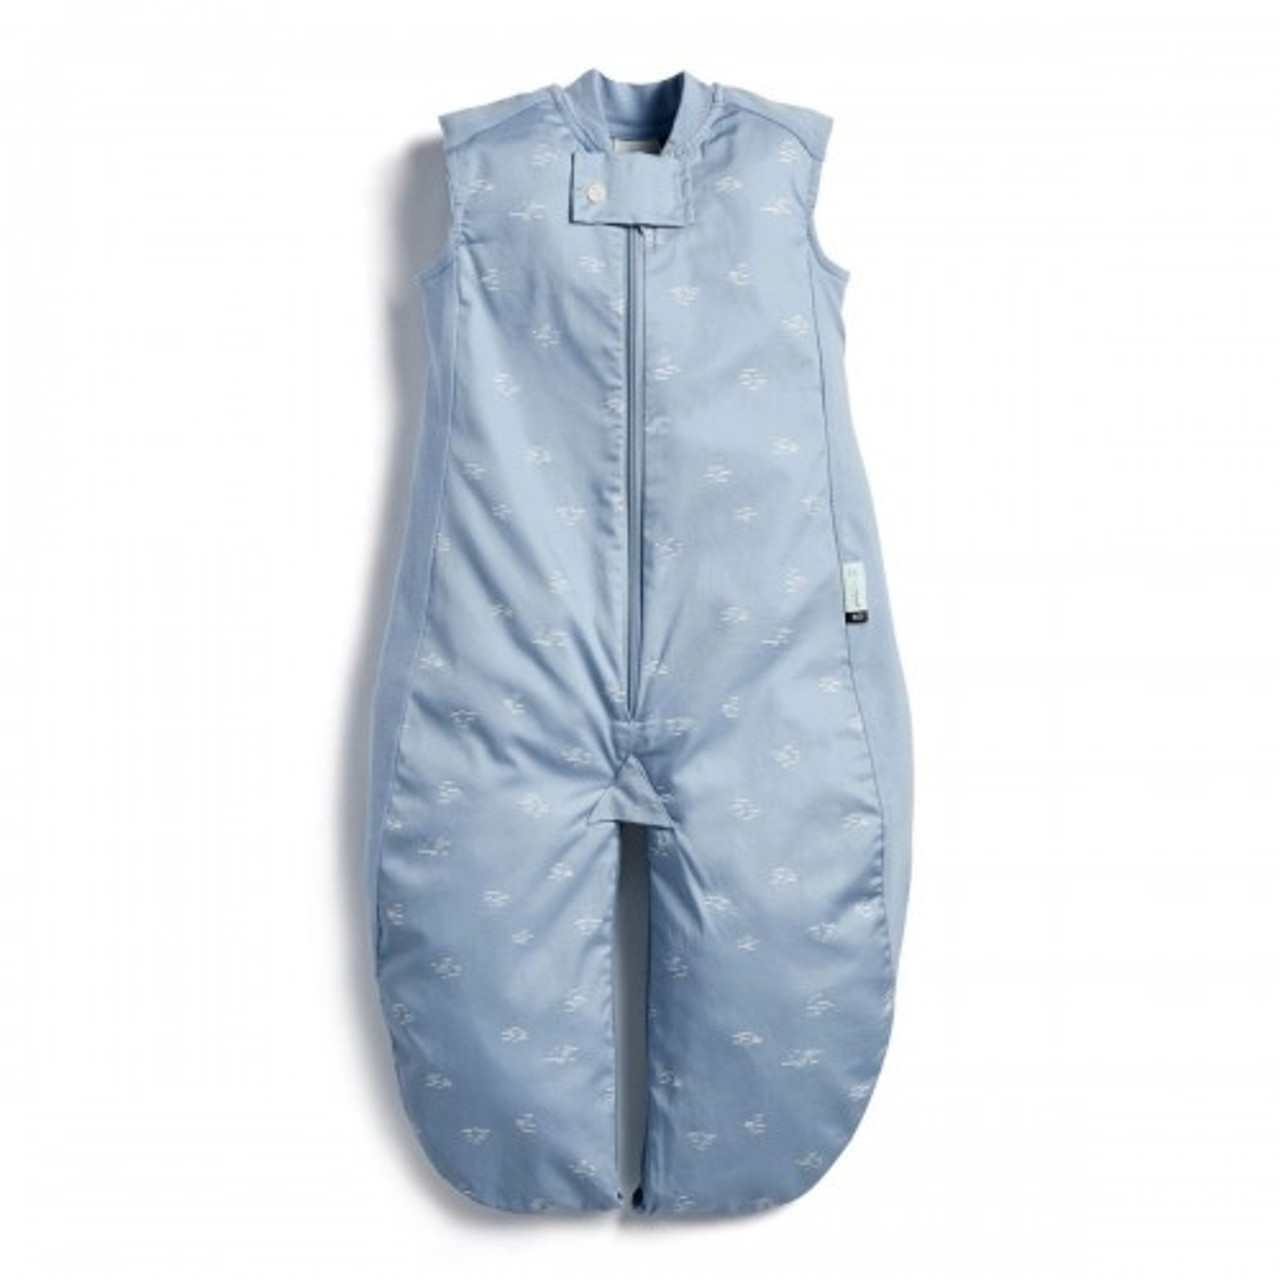 Ergopouch Sleep Suit Bag 0.3 Tog 8-24 Months RIPPLE at Baby Barn Discounts